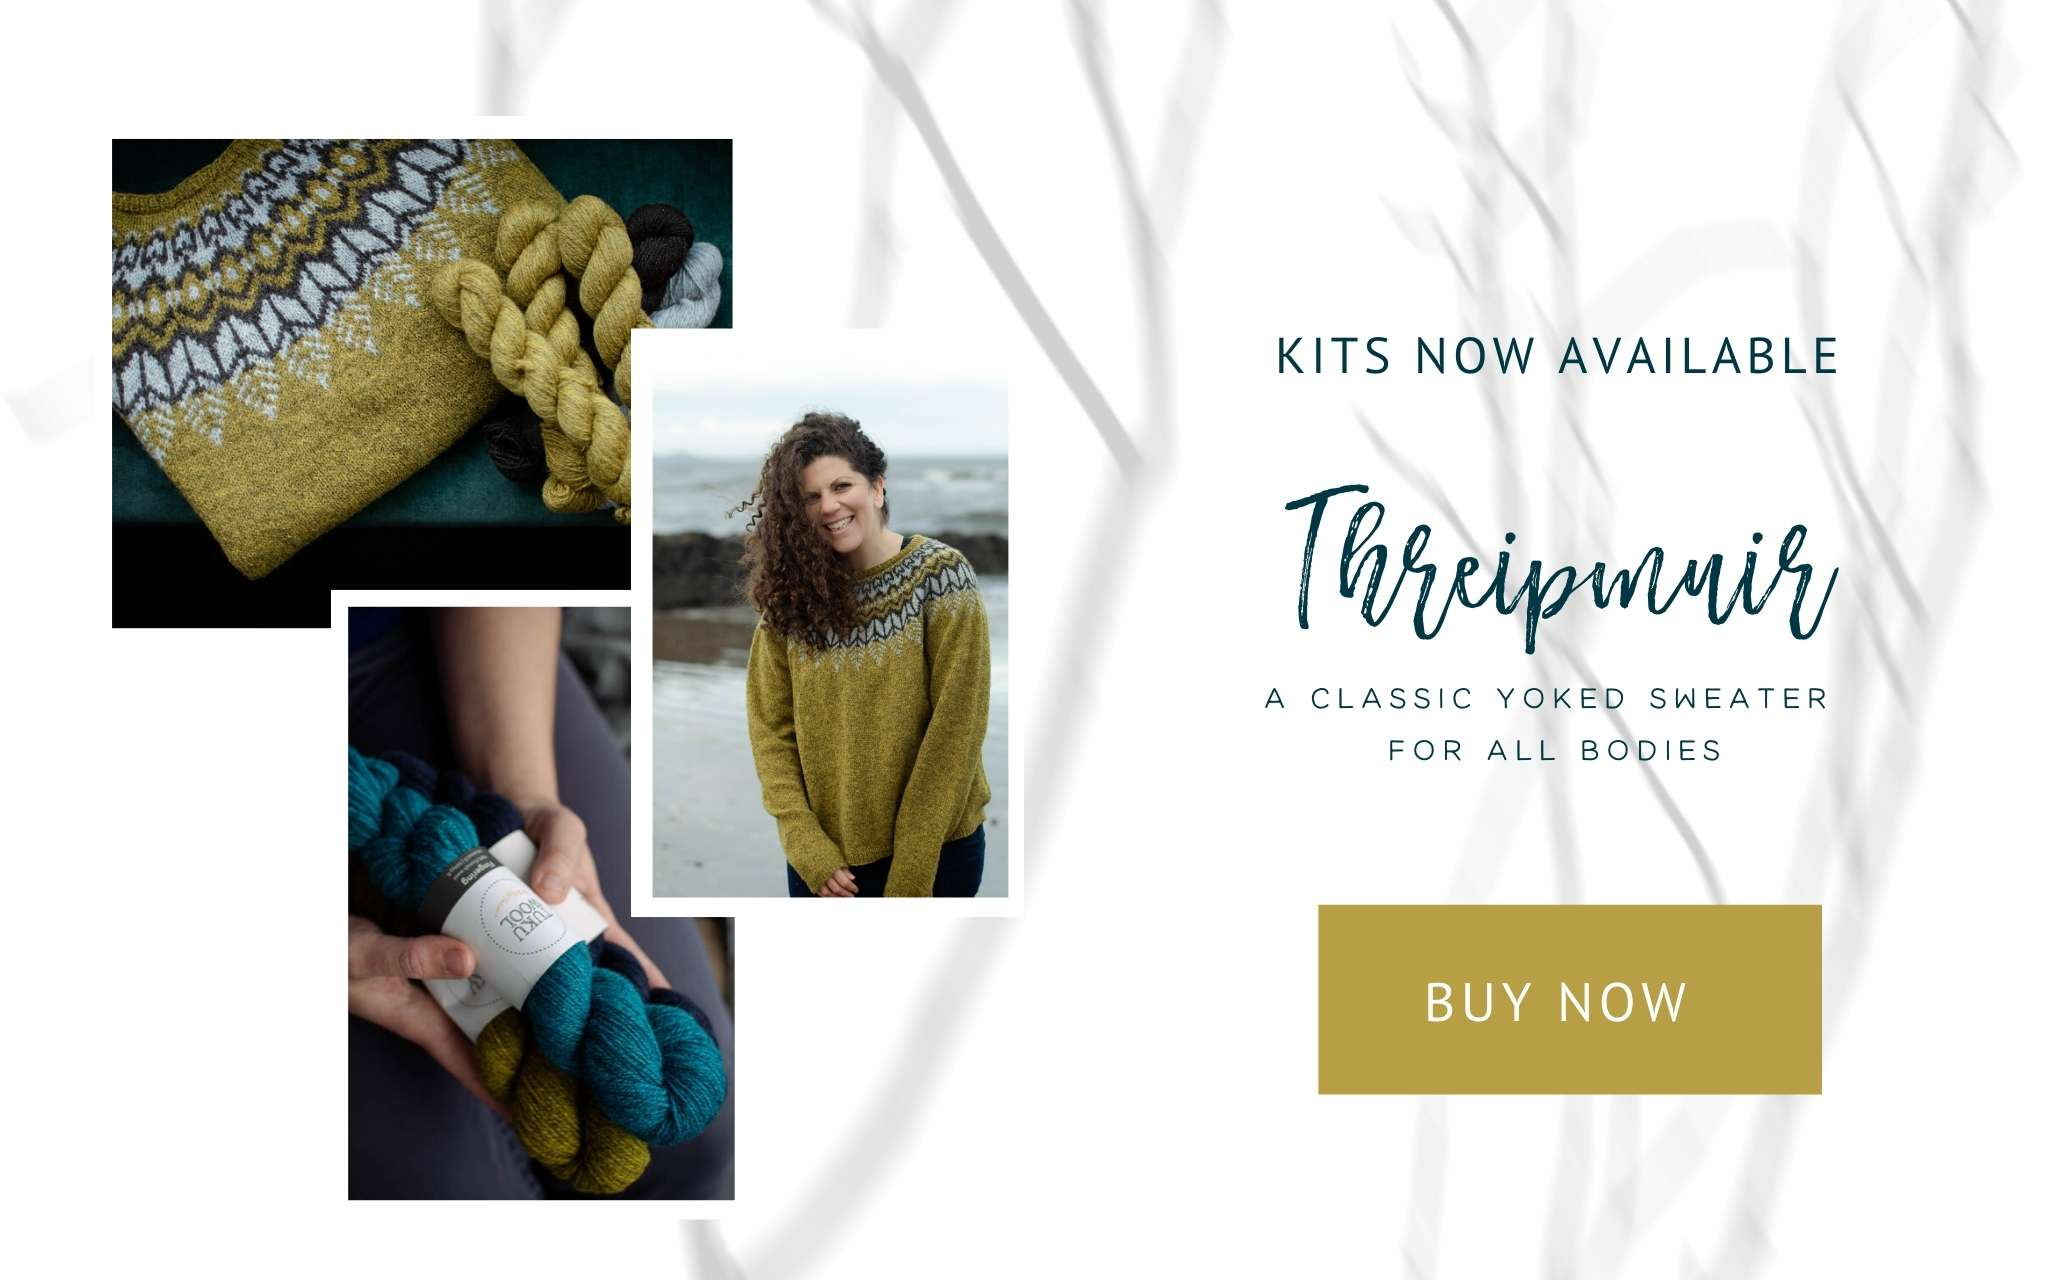 Threipmuir, a classic yoked sweater for all bodies. Images of a folded colourwork sweater, hands holding skeins of yarn and an image of a white woman with dark curly hair wearing a colourwork sweater on a beach, which is faded in the background.